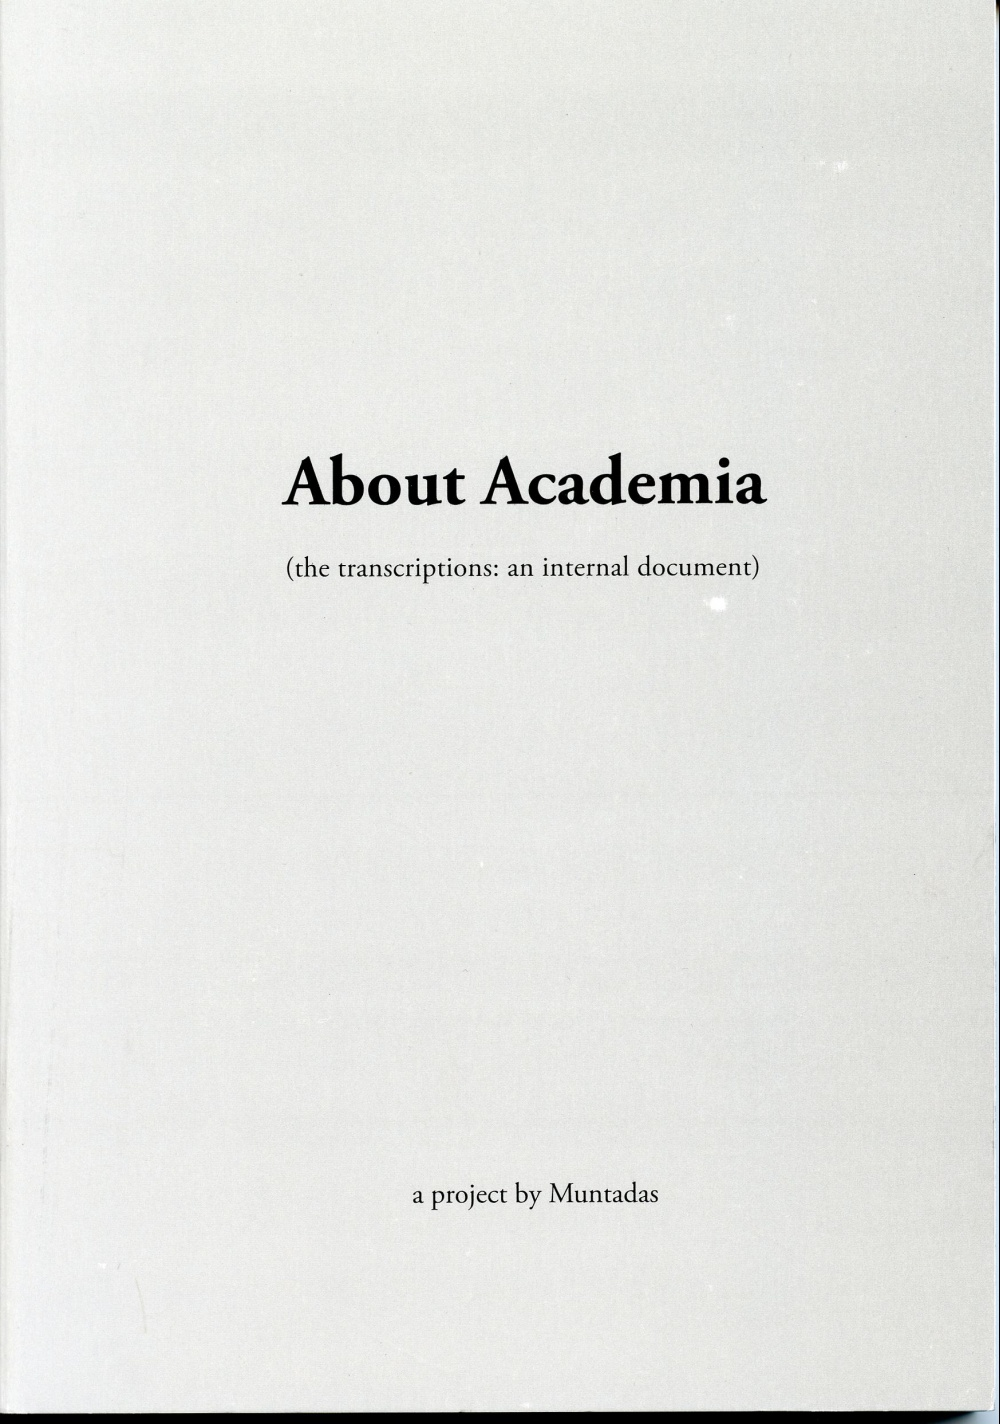 About Academia (the transcriptions: an internal document)